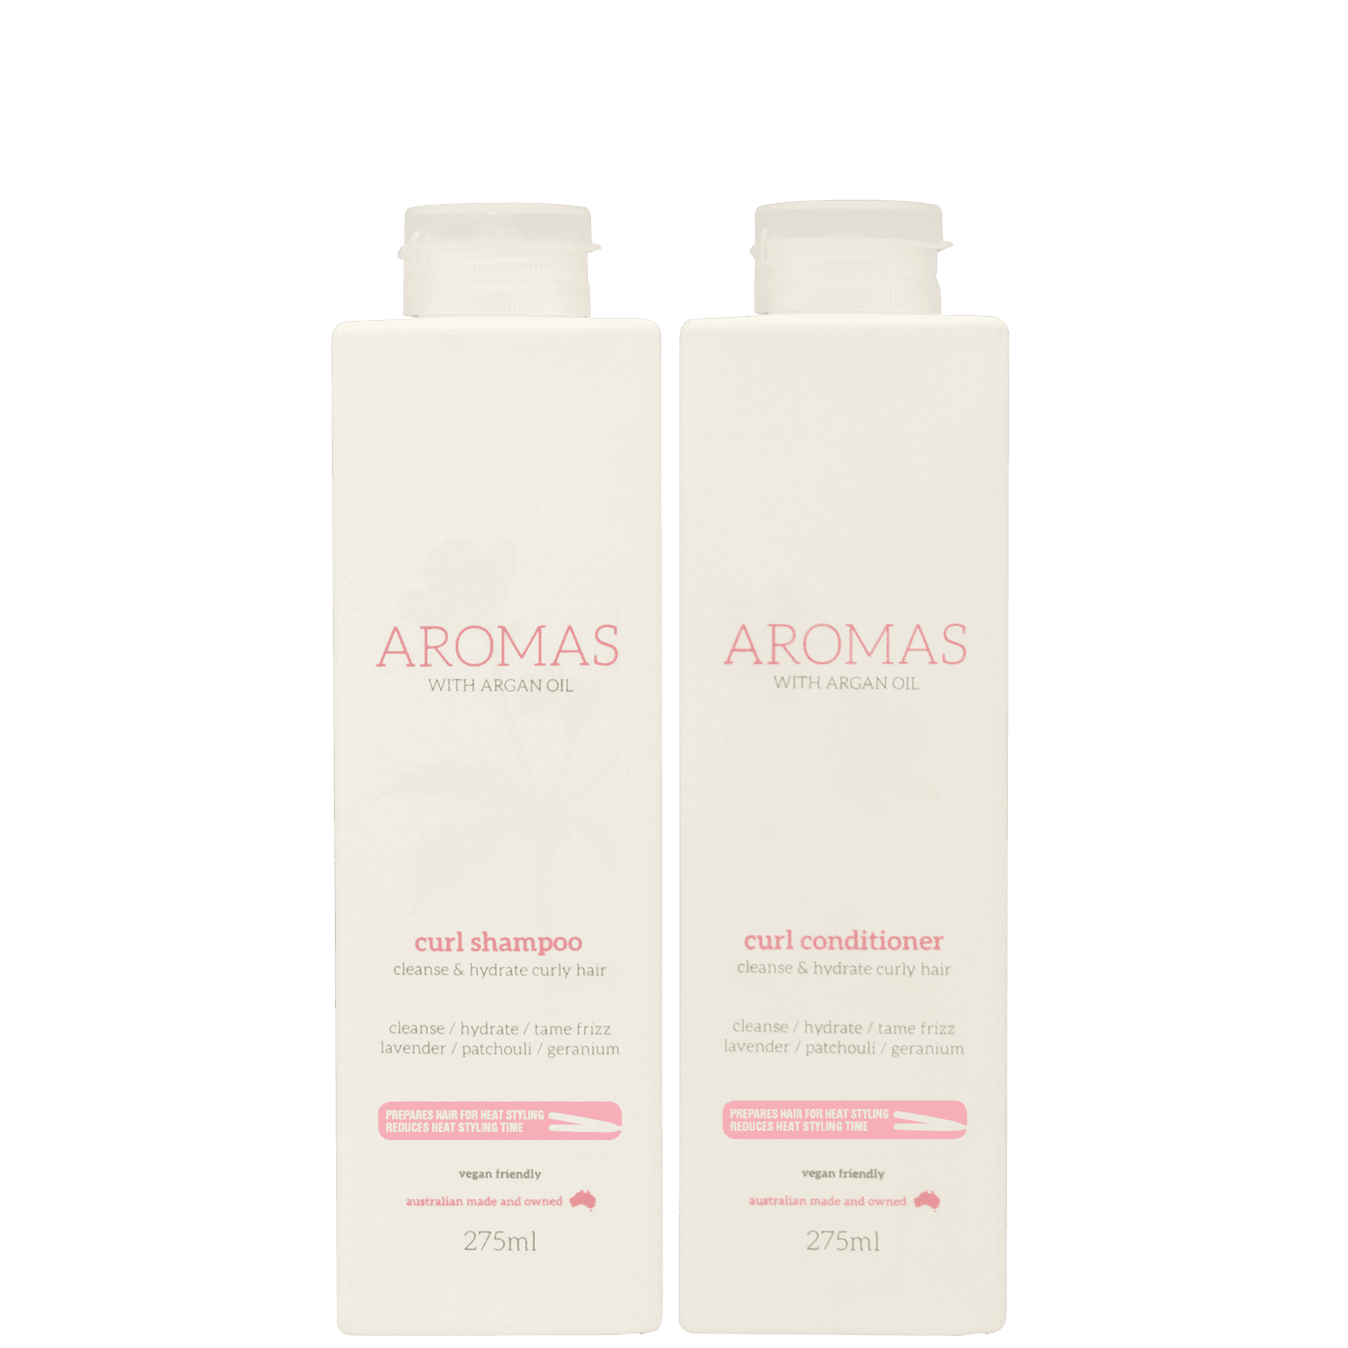 Aromas Curl Shampoo & Conditioner with Argan Oil